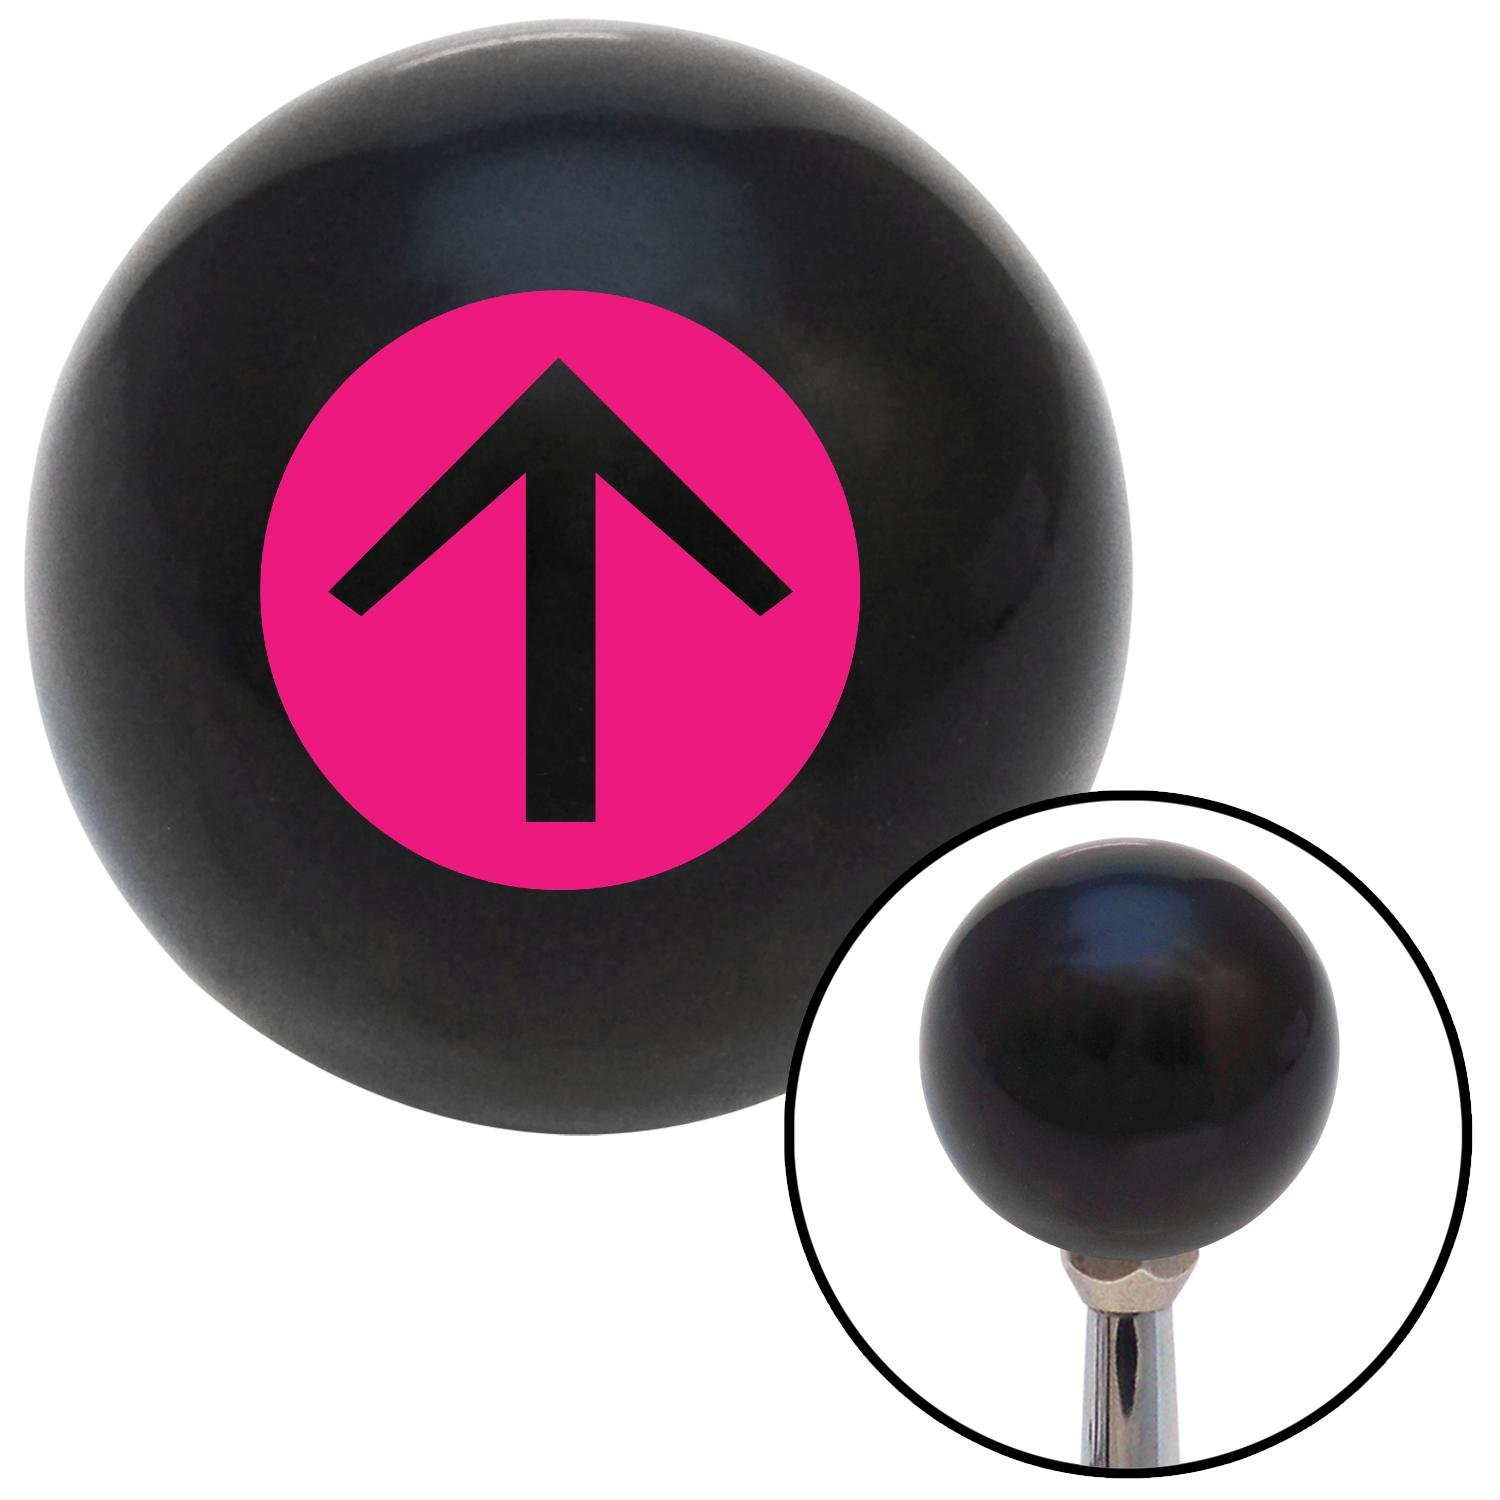 Pink Circle Directional Arrow Up American Shifter 103593 Black Shift Knob with M16 x 1.5 Insert